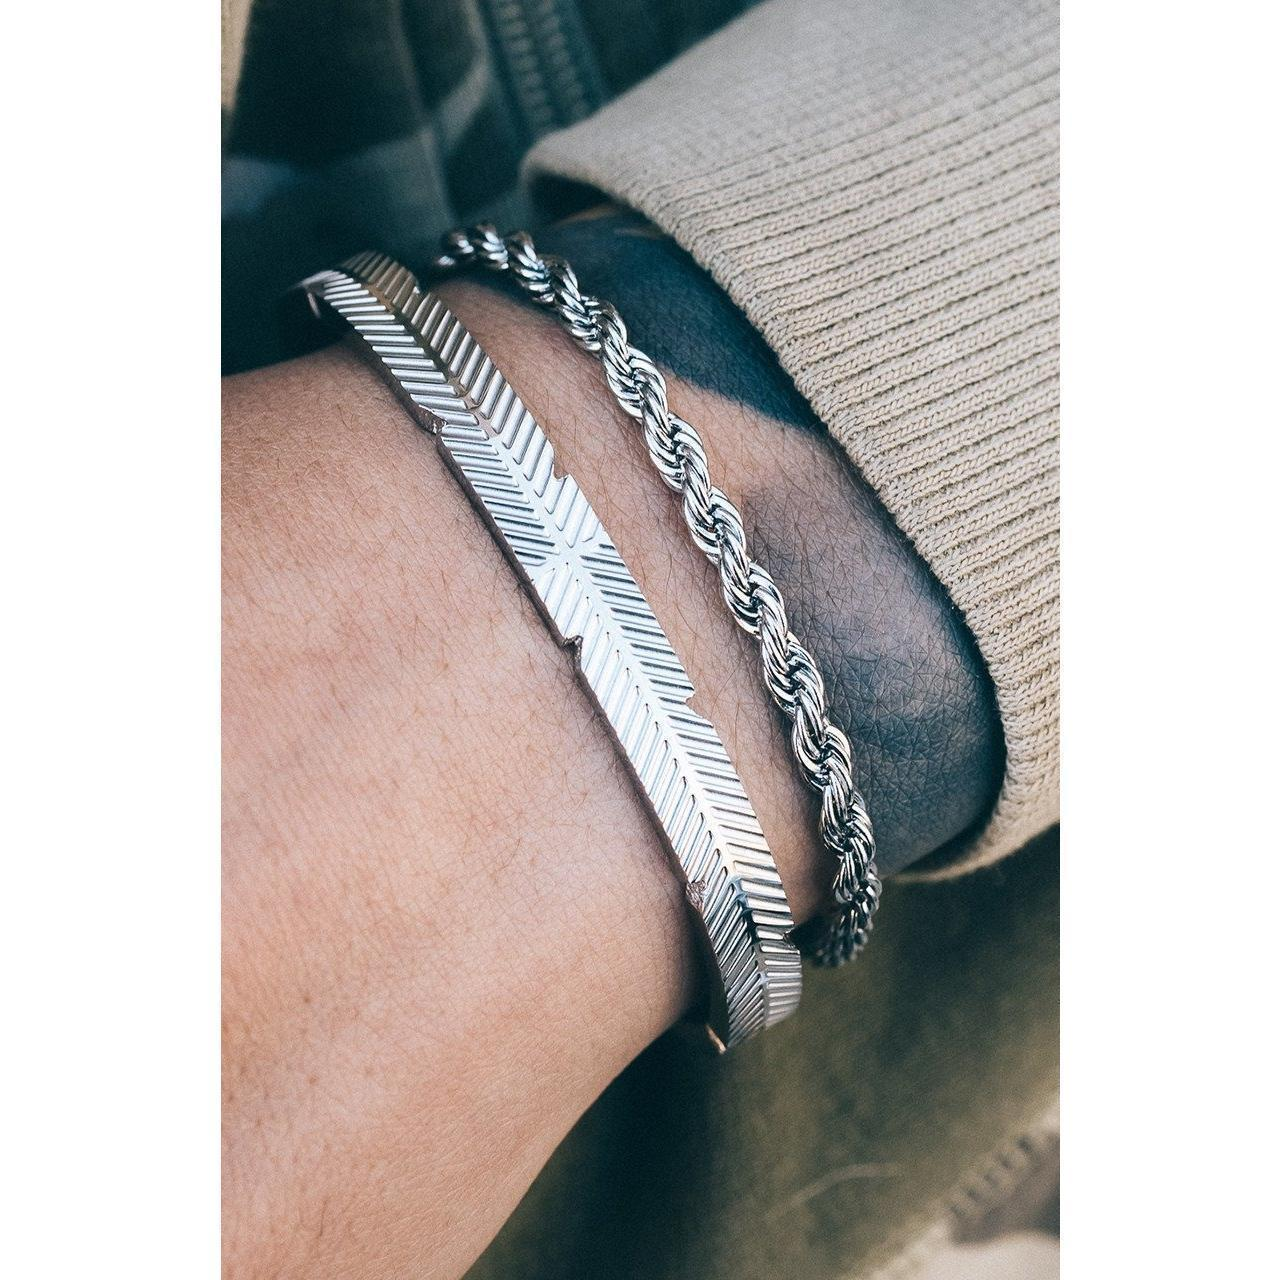 Mister Feather Cuff Bracelet - Seize&Desist Los Angeles